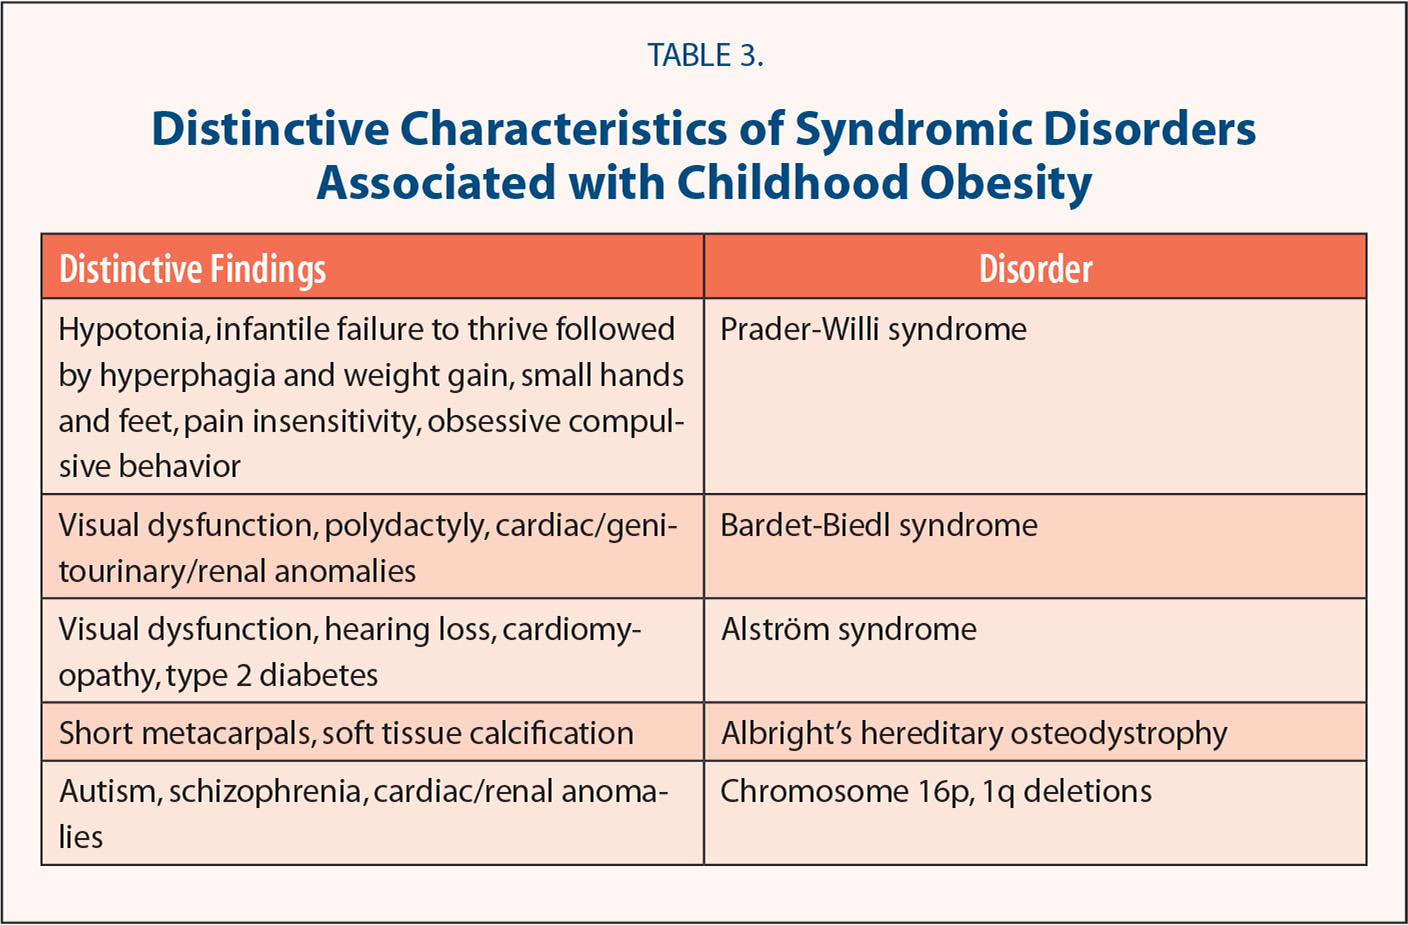 Distinctive Characteristics of Syndromic Disorders Associated with Childhood Obesity